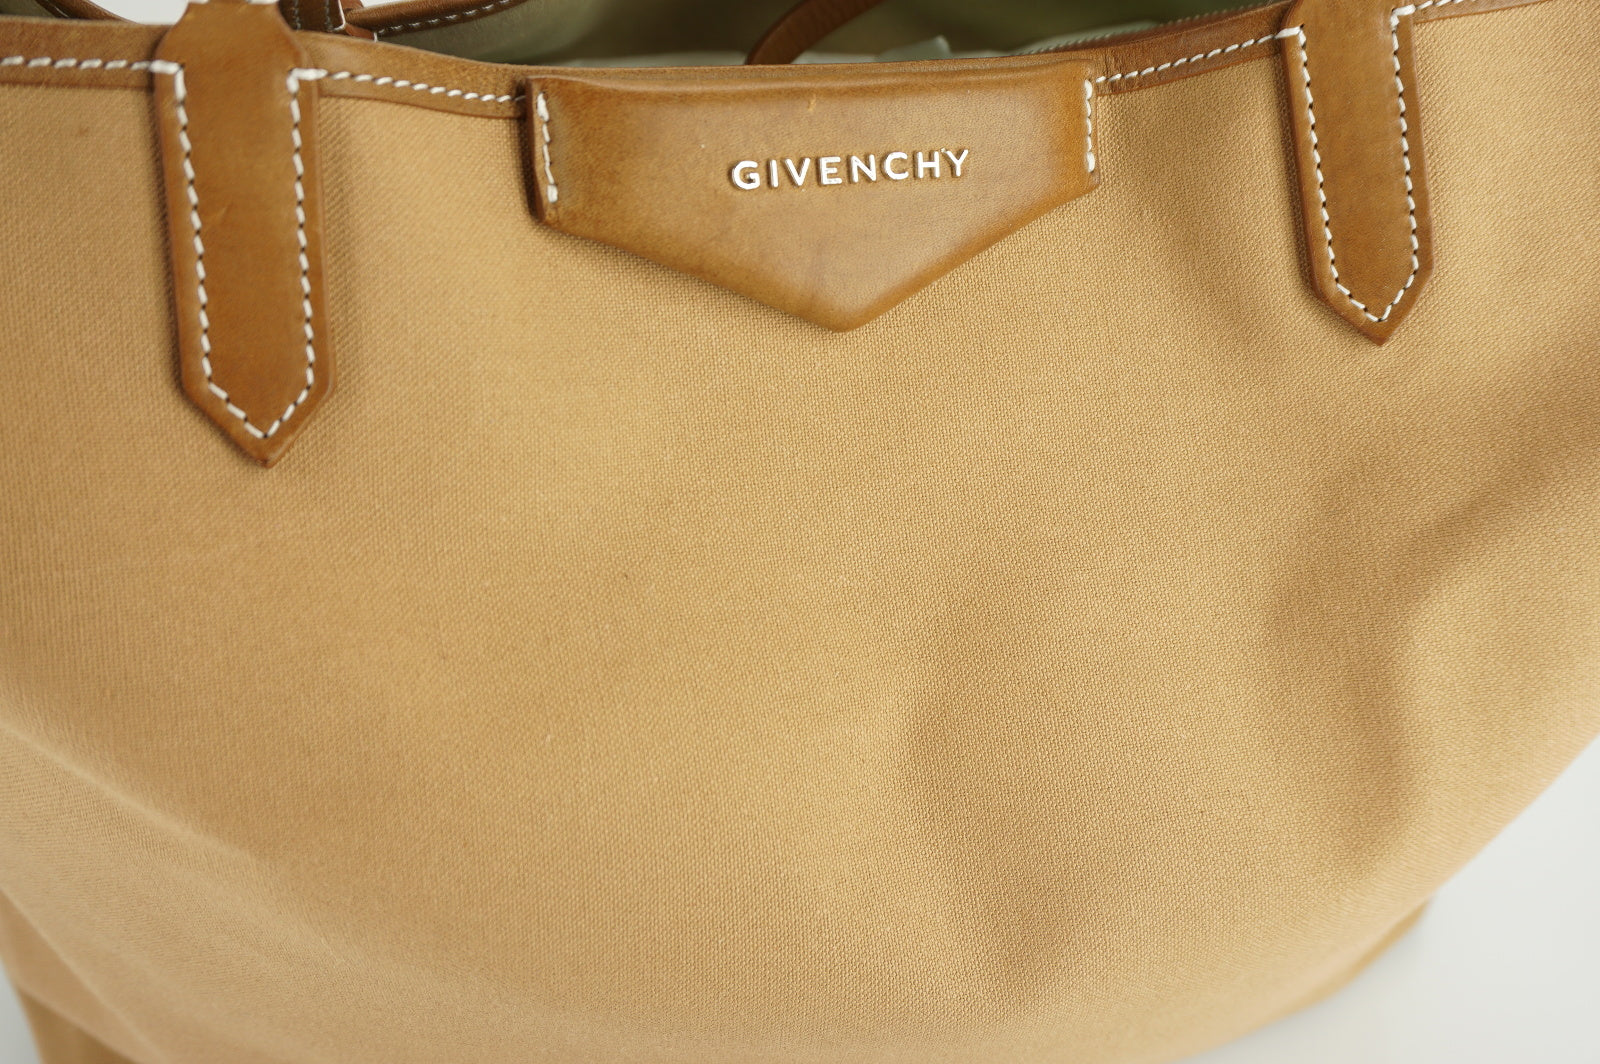 Givenchy Womens Antigona Shopping Bag Tote Bag Brown Canvas Size Large